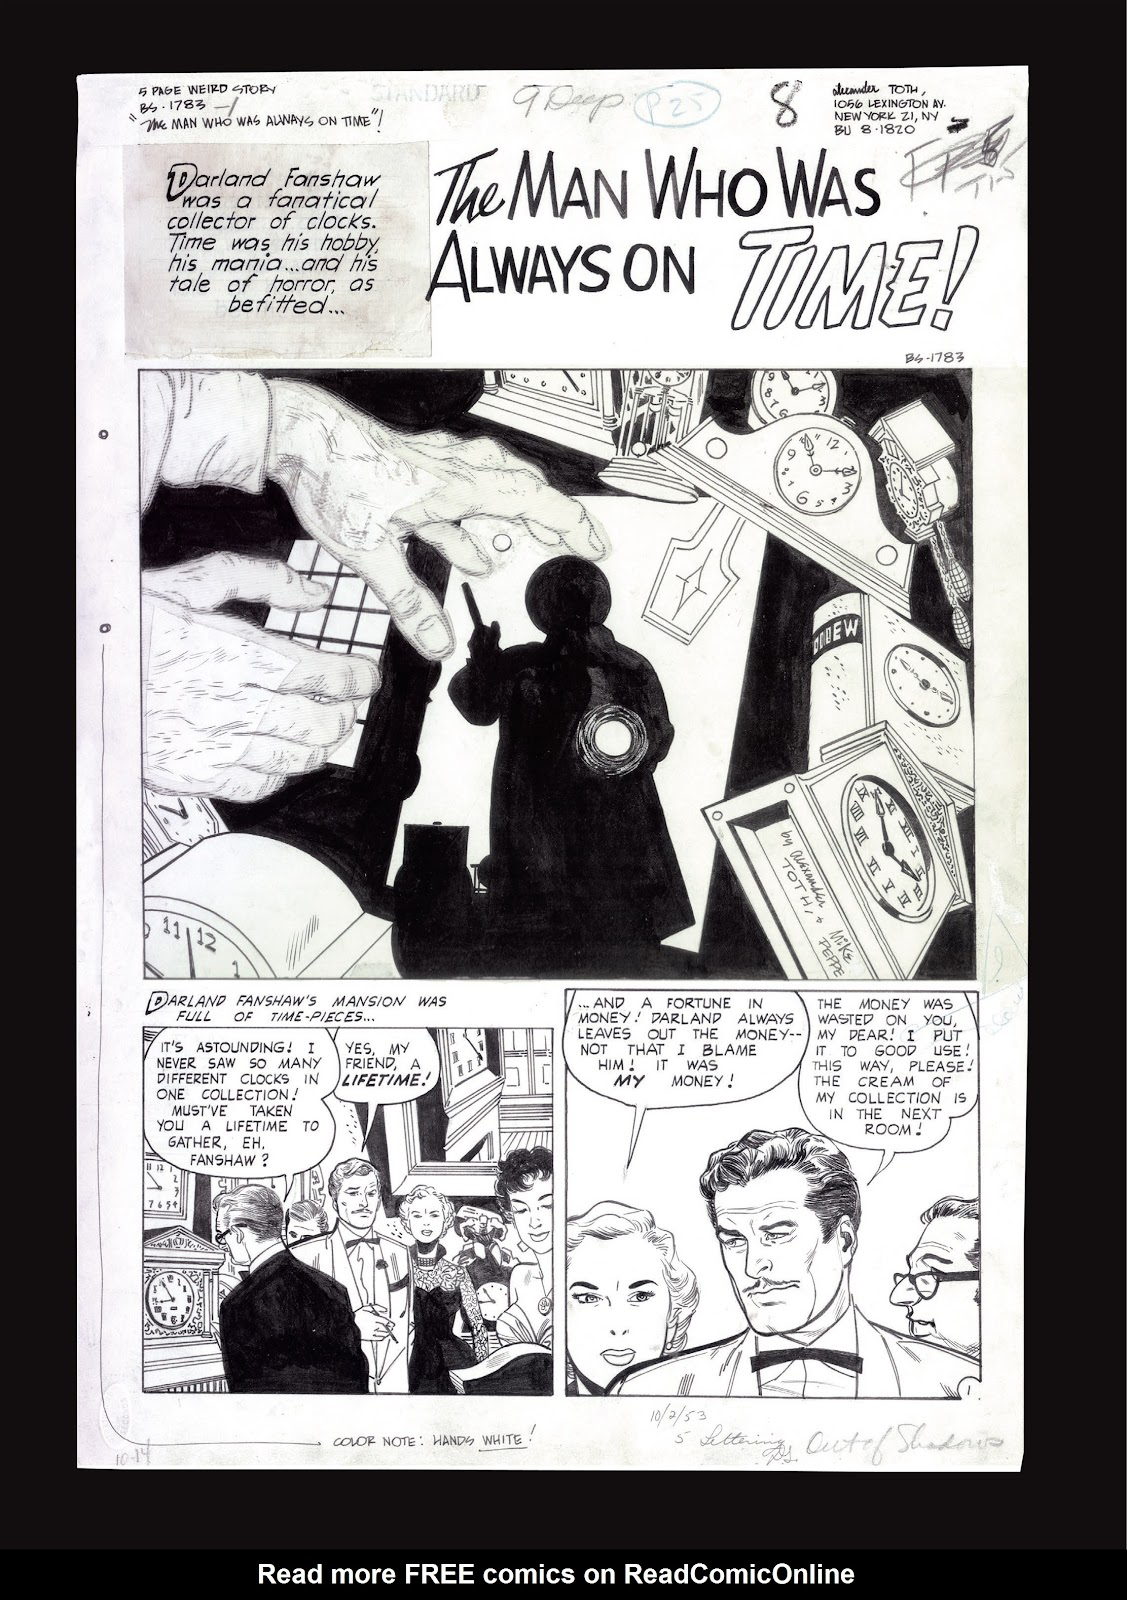 Read online Setting the Standard: Comics by Alex Toth 1952-1954 comic -  Issue # TPB (Part 4) - 129